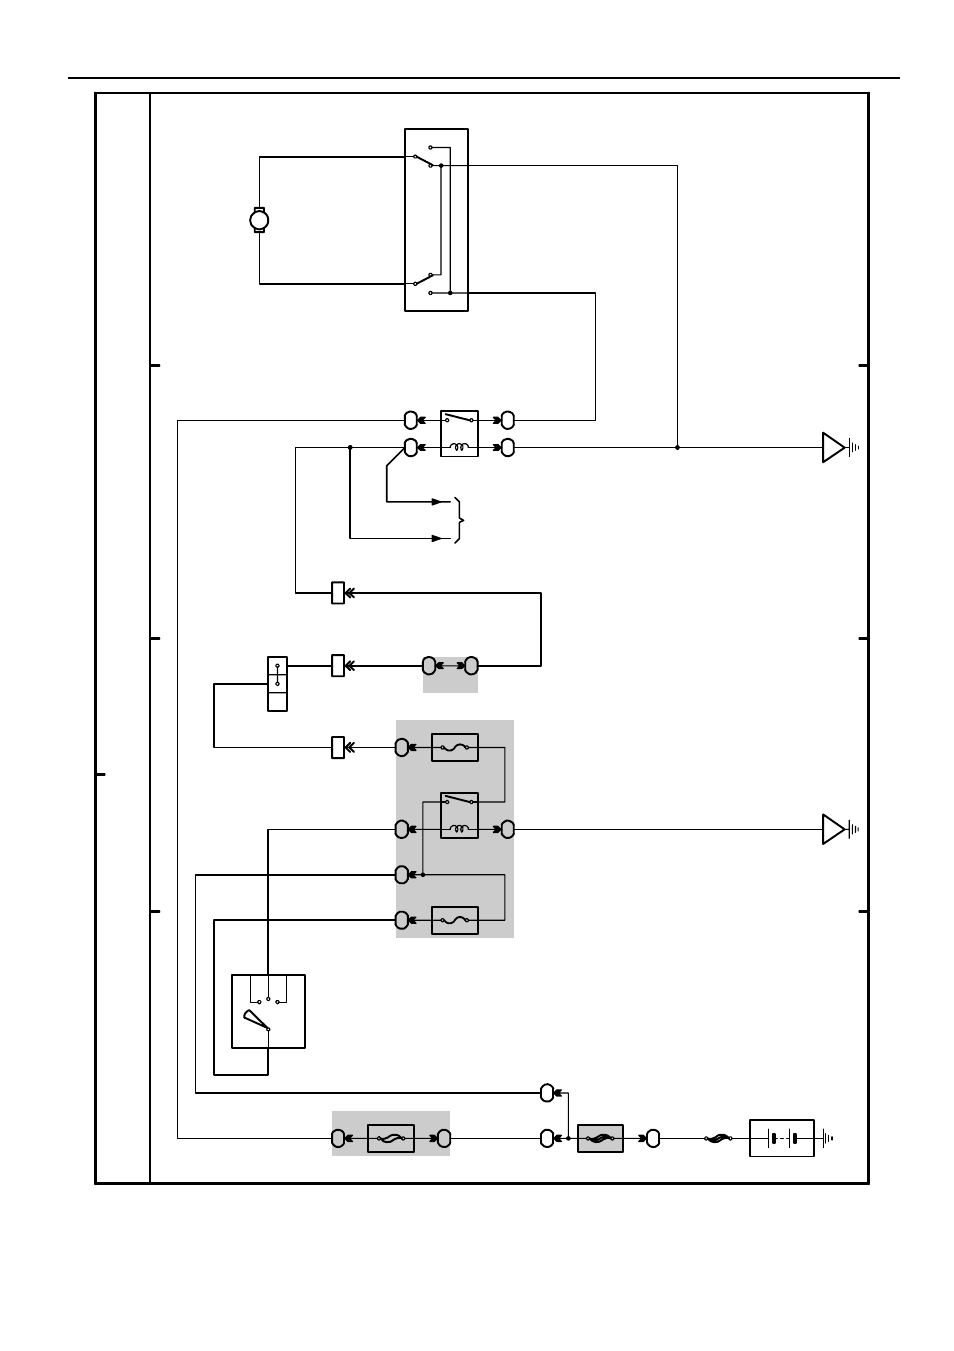 M overall electrical wiring diagram | TOYOTA 2005 CAMRY User Manual on yukon wiring diagram, traverse wiring diagram, challenger wiring diagram, armada wiring diagram, g6 wiring diagram, celica wiring diagram, matrix wiring diagram, galant wiring diagram, forester wiring diagram, land cruiser wiring diagram, avalon wiring diagram, legacy wiring diagram, fusion wiring diagram, versa wiring diagram, echo wiring diagram, impreza wiring diagram, es 350 wiring diagram, regal wiring diagram, lesabre wiring diagram, van wiring diagram,